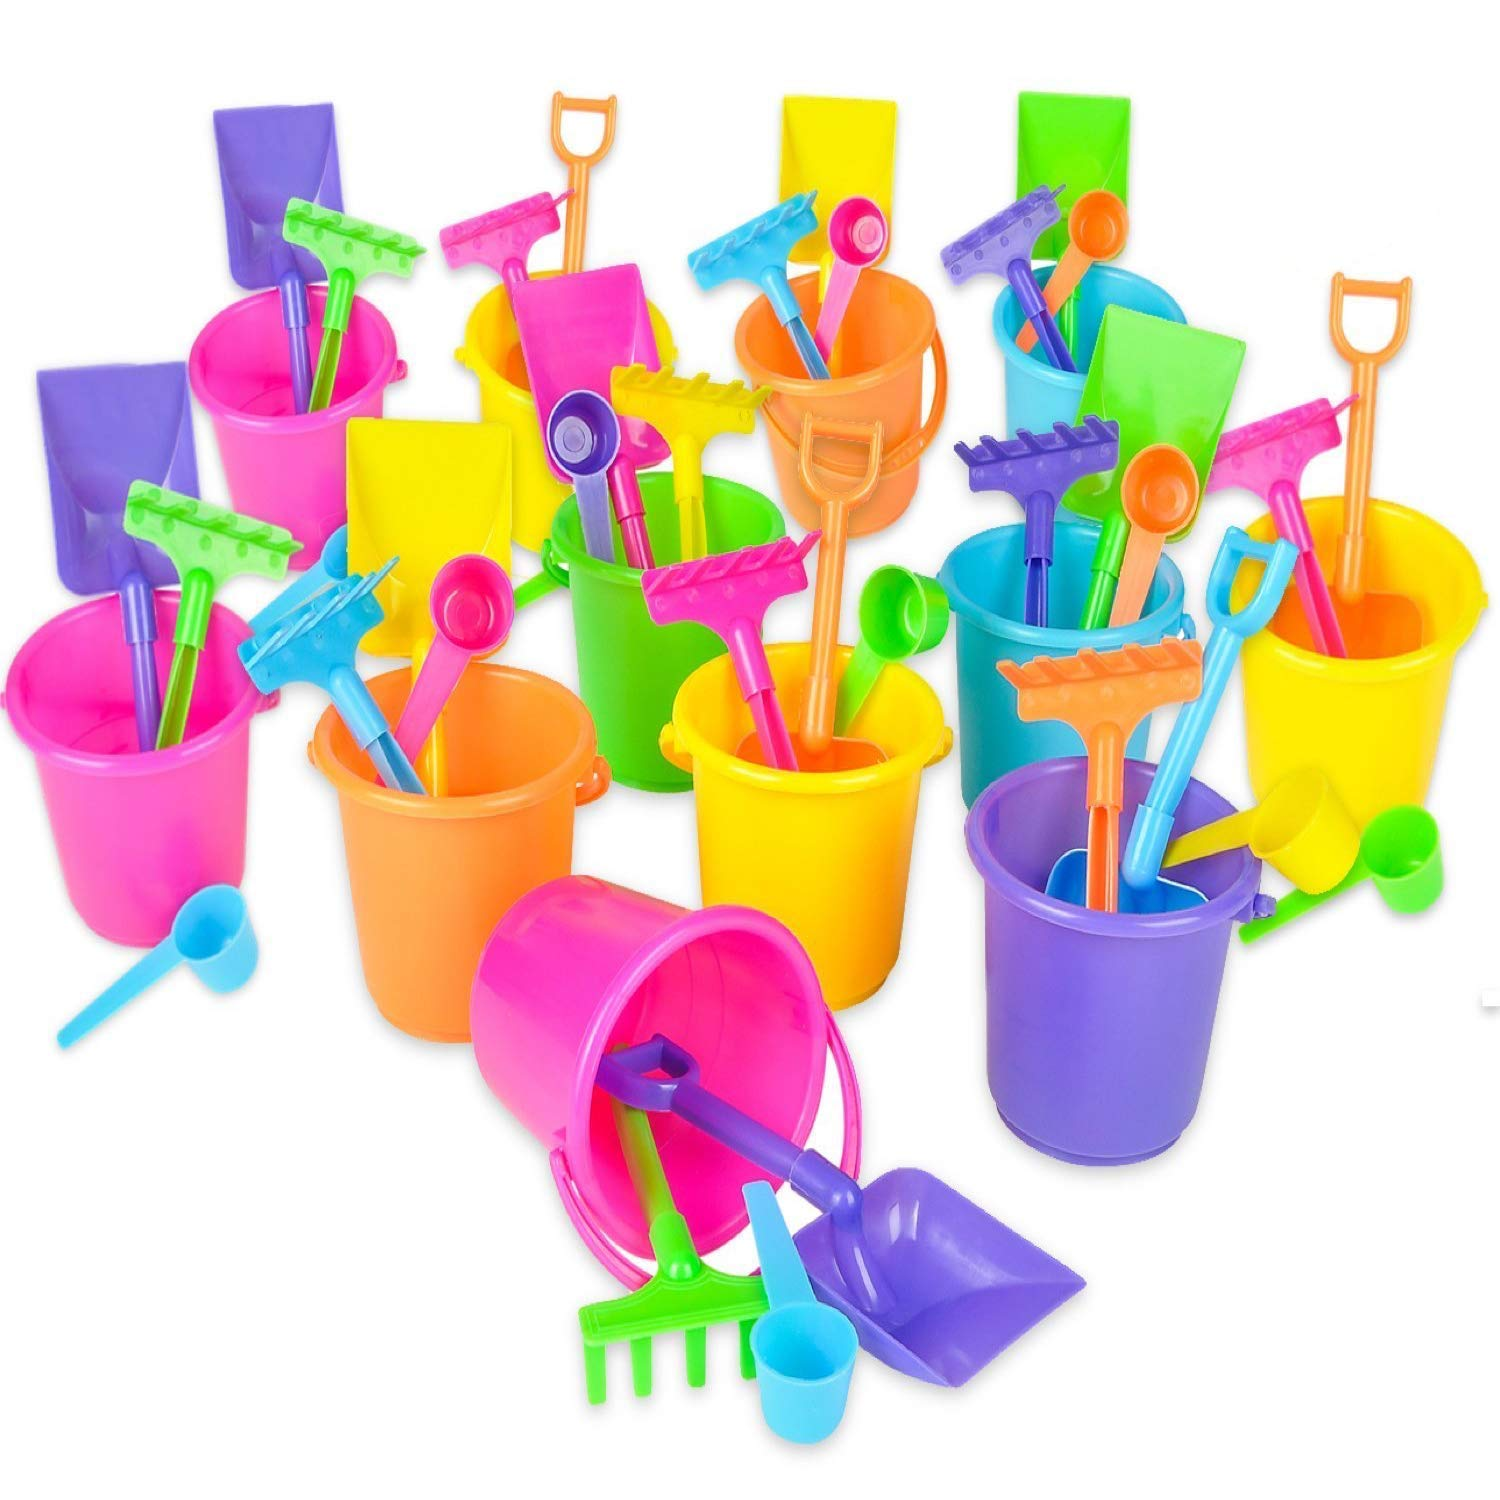 Mini Beach Bucket and Shovel Set - (Pack of 12) 3-1/4'' Mini Bucket Party Favor Sand Box Play Set and Mini Beach Sand Pail Includes, Shovel, Rake, Scoop Beach Sand Toy for Birthday Or Mermaid Theme by Bedwina